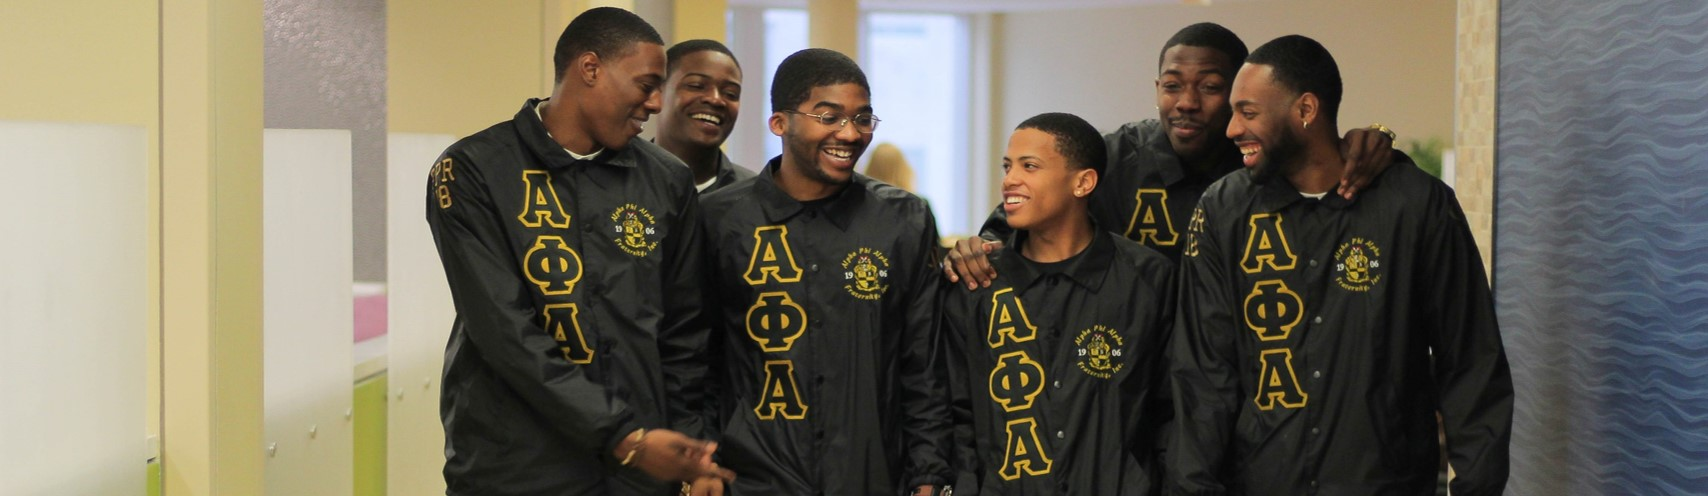 Alpha Phi Alpha Fraternity, Incorporated